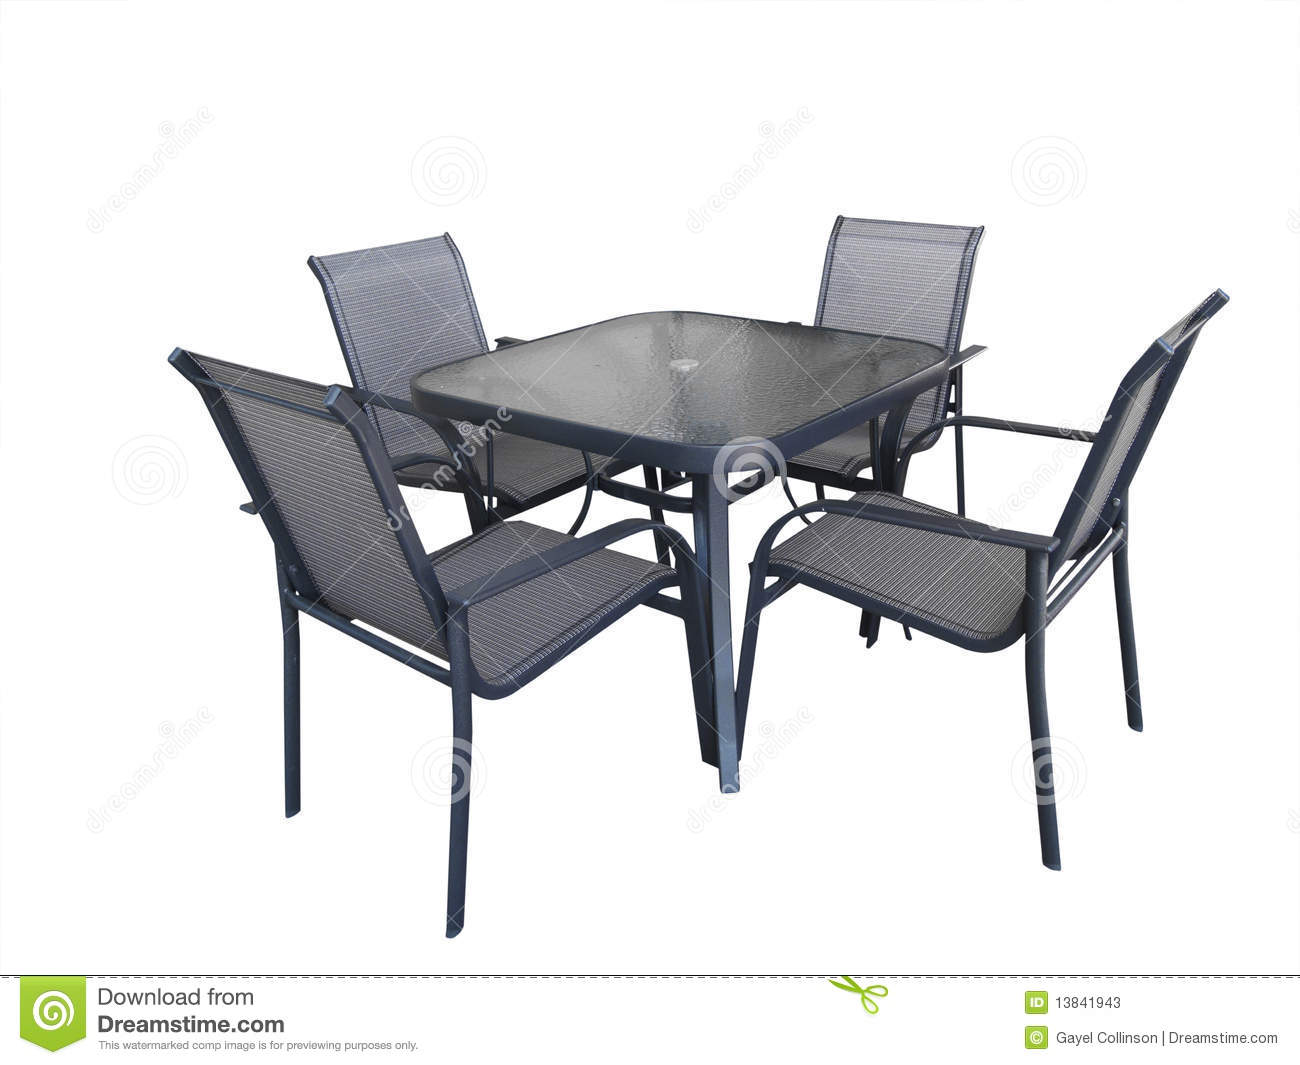 Brilliant Outdoor Table and Chairs 1300 x 1065 · 101 kB · jpeg